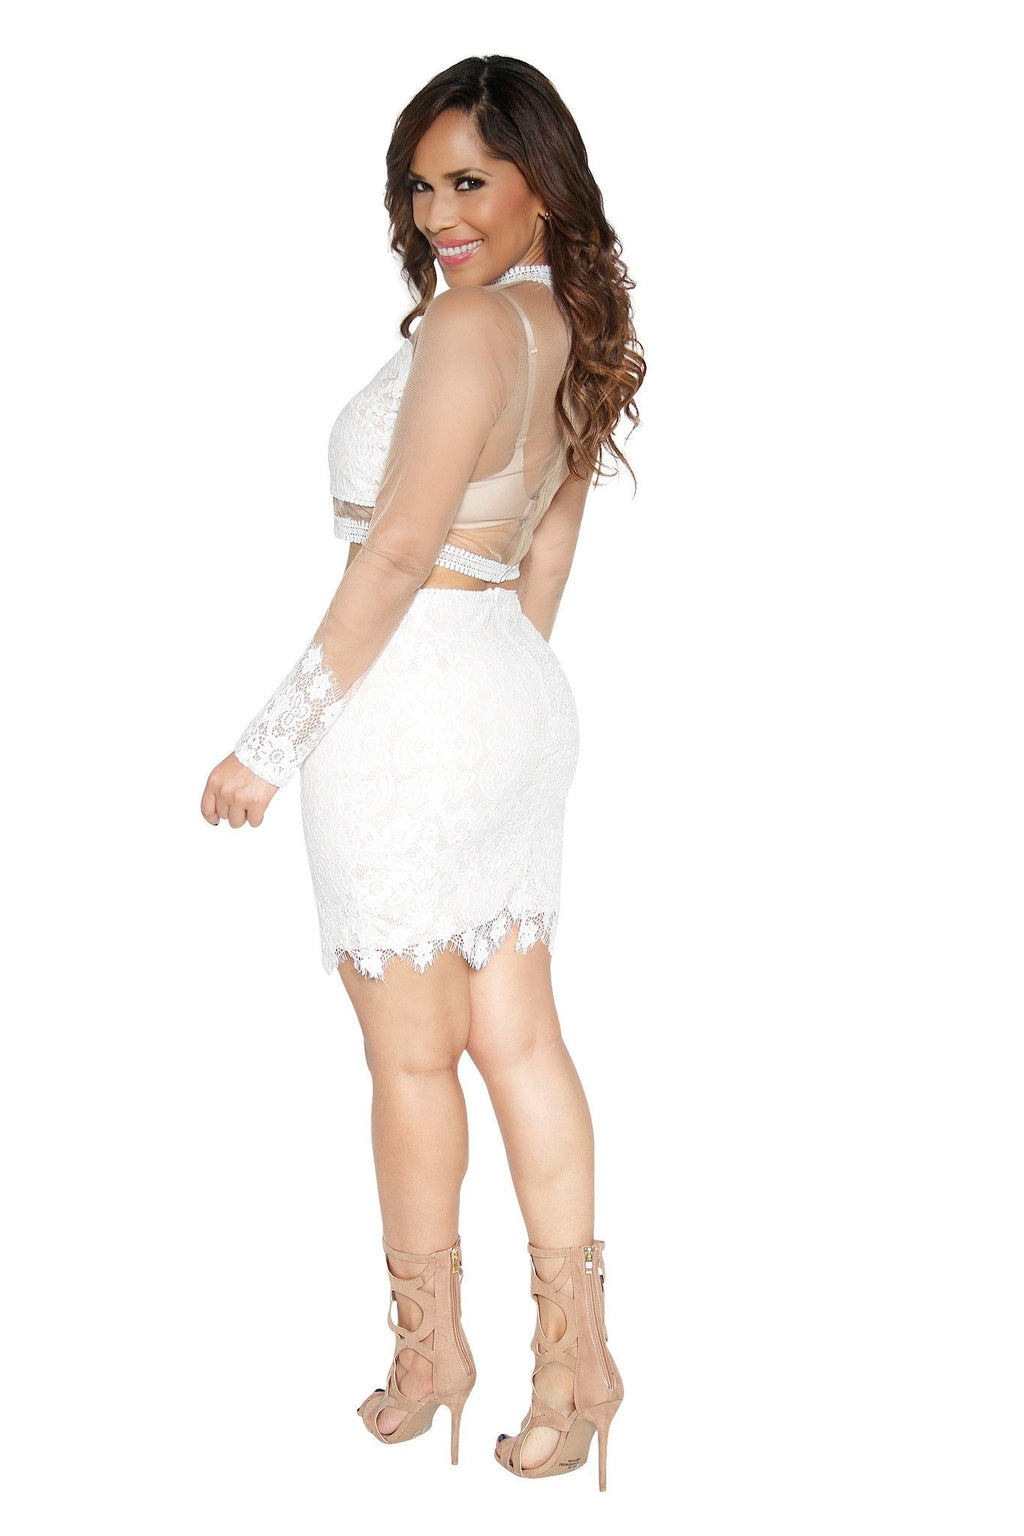 Sexy Long Sleeved Ivory Crochet Top and Skirt Set - MY SEXY STYLES